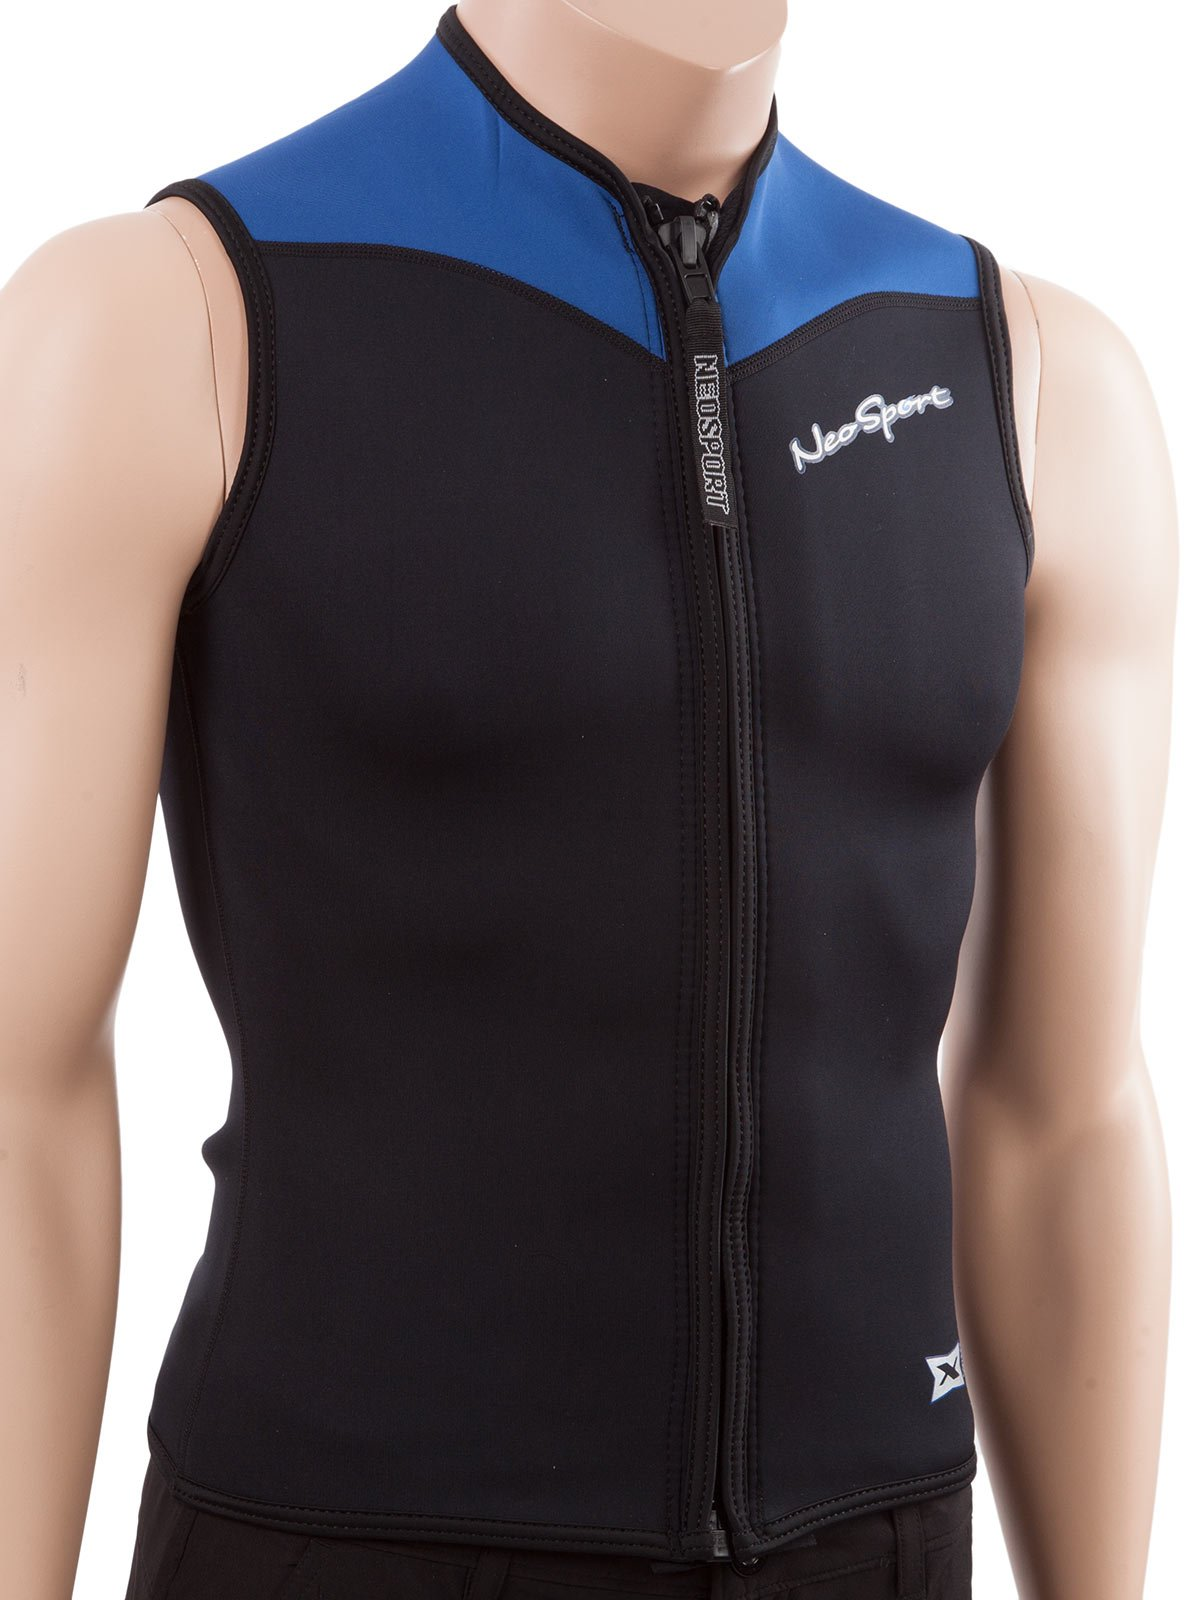 Neosport Men's XSPAN 2.5mm Sport Vest Blue 5XL by NeoSport